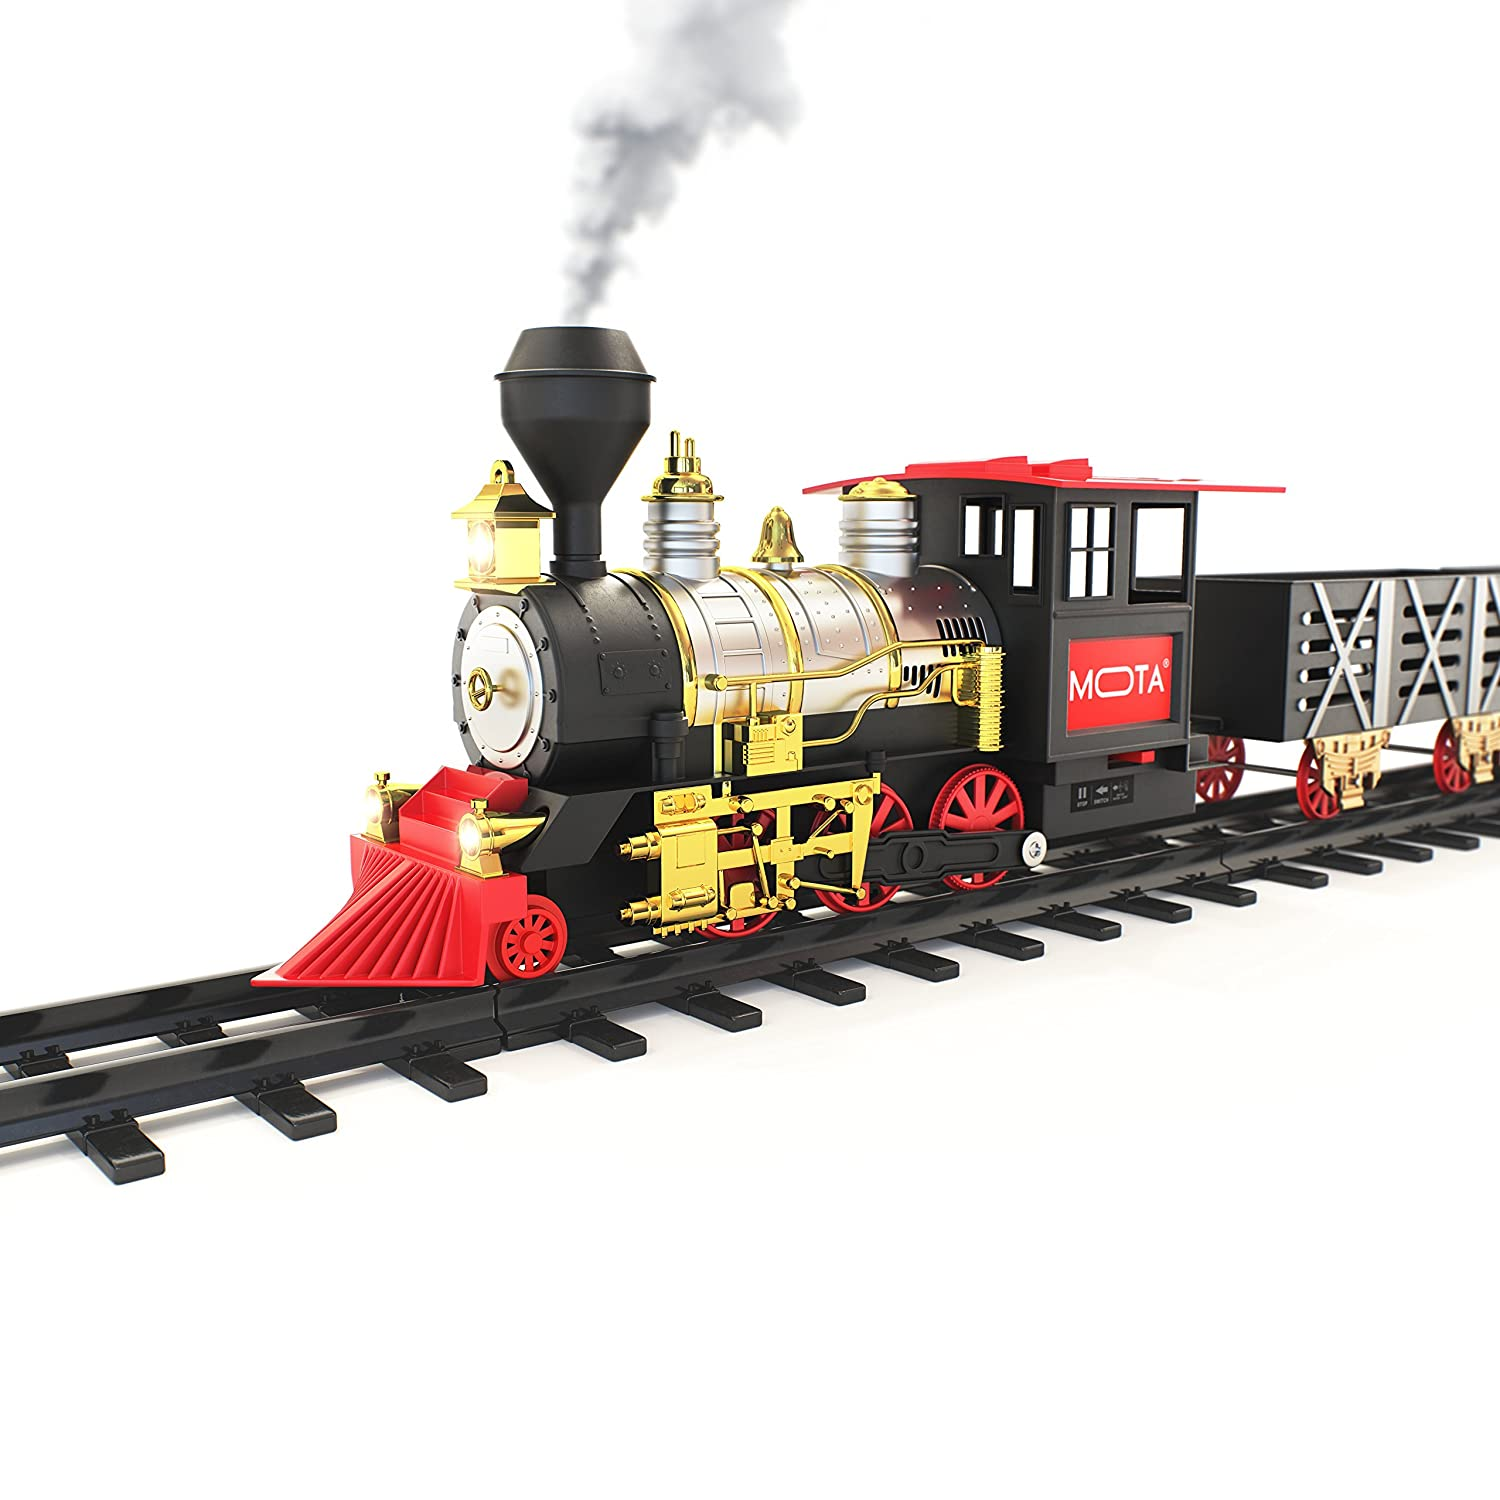 Amazon.com: MOTA Classic Toy Train with Real Smoke – Signature ...